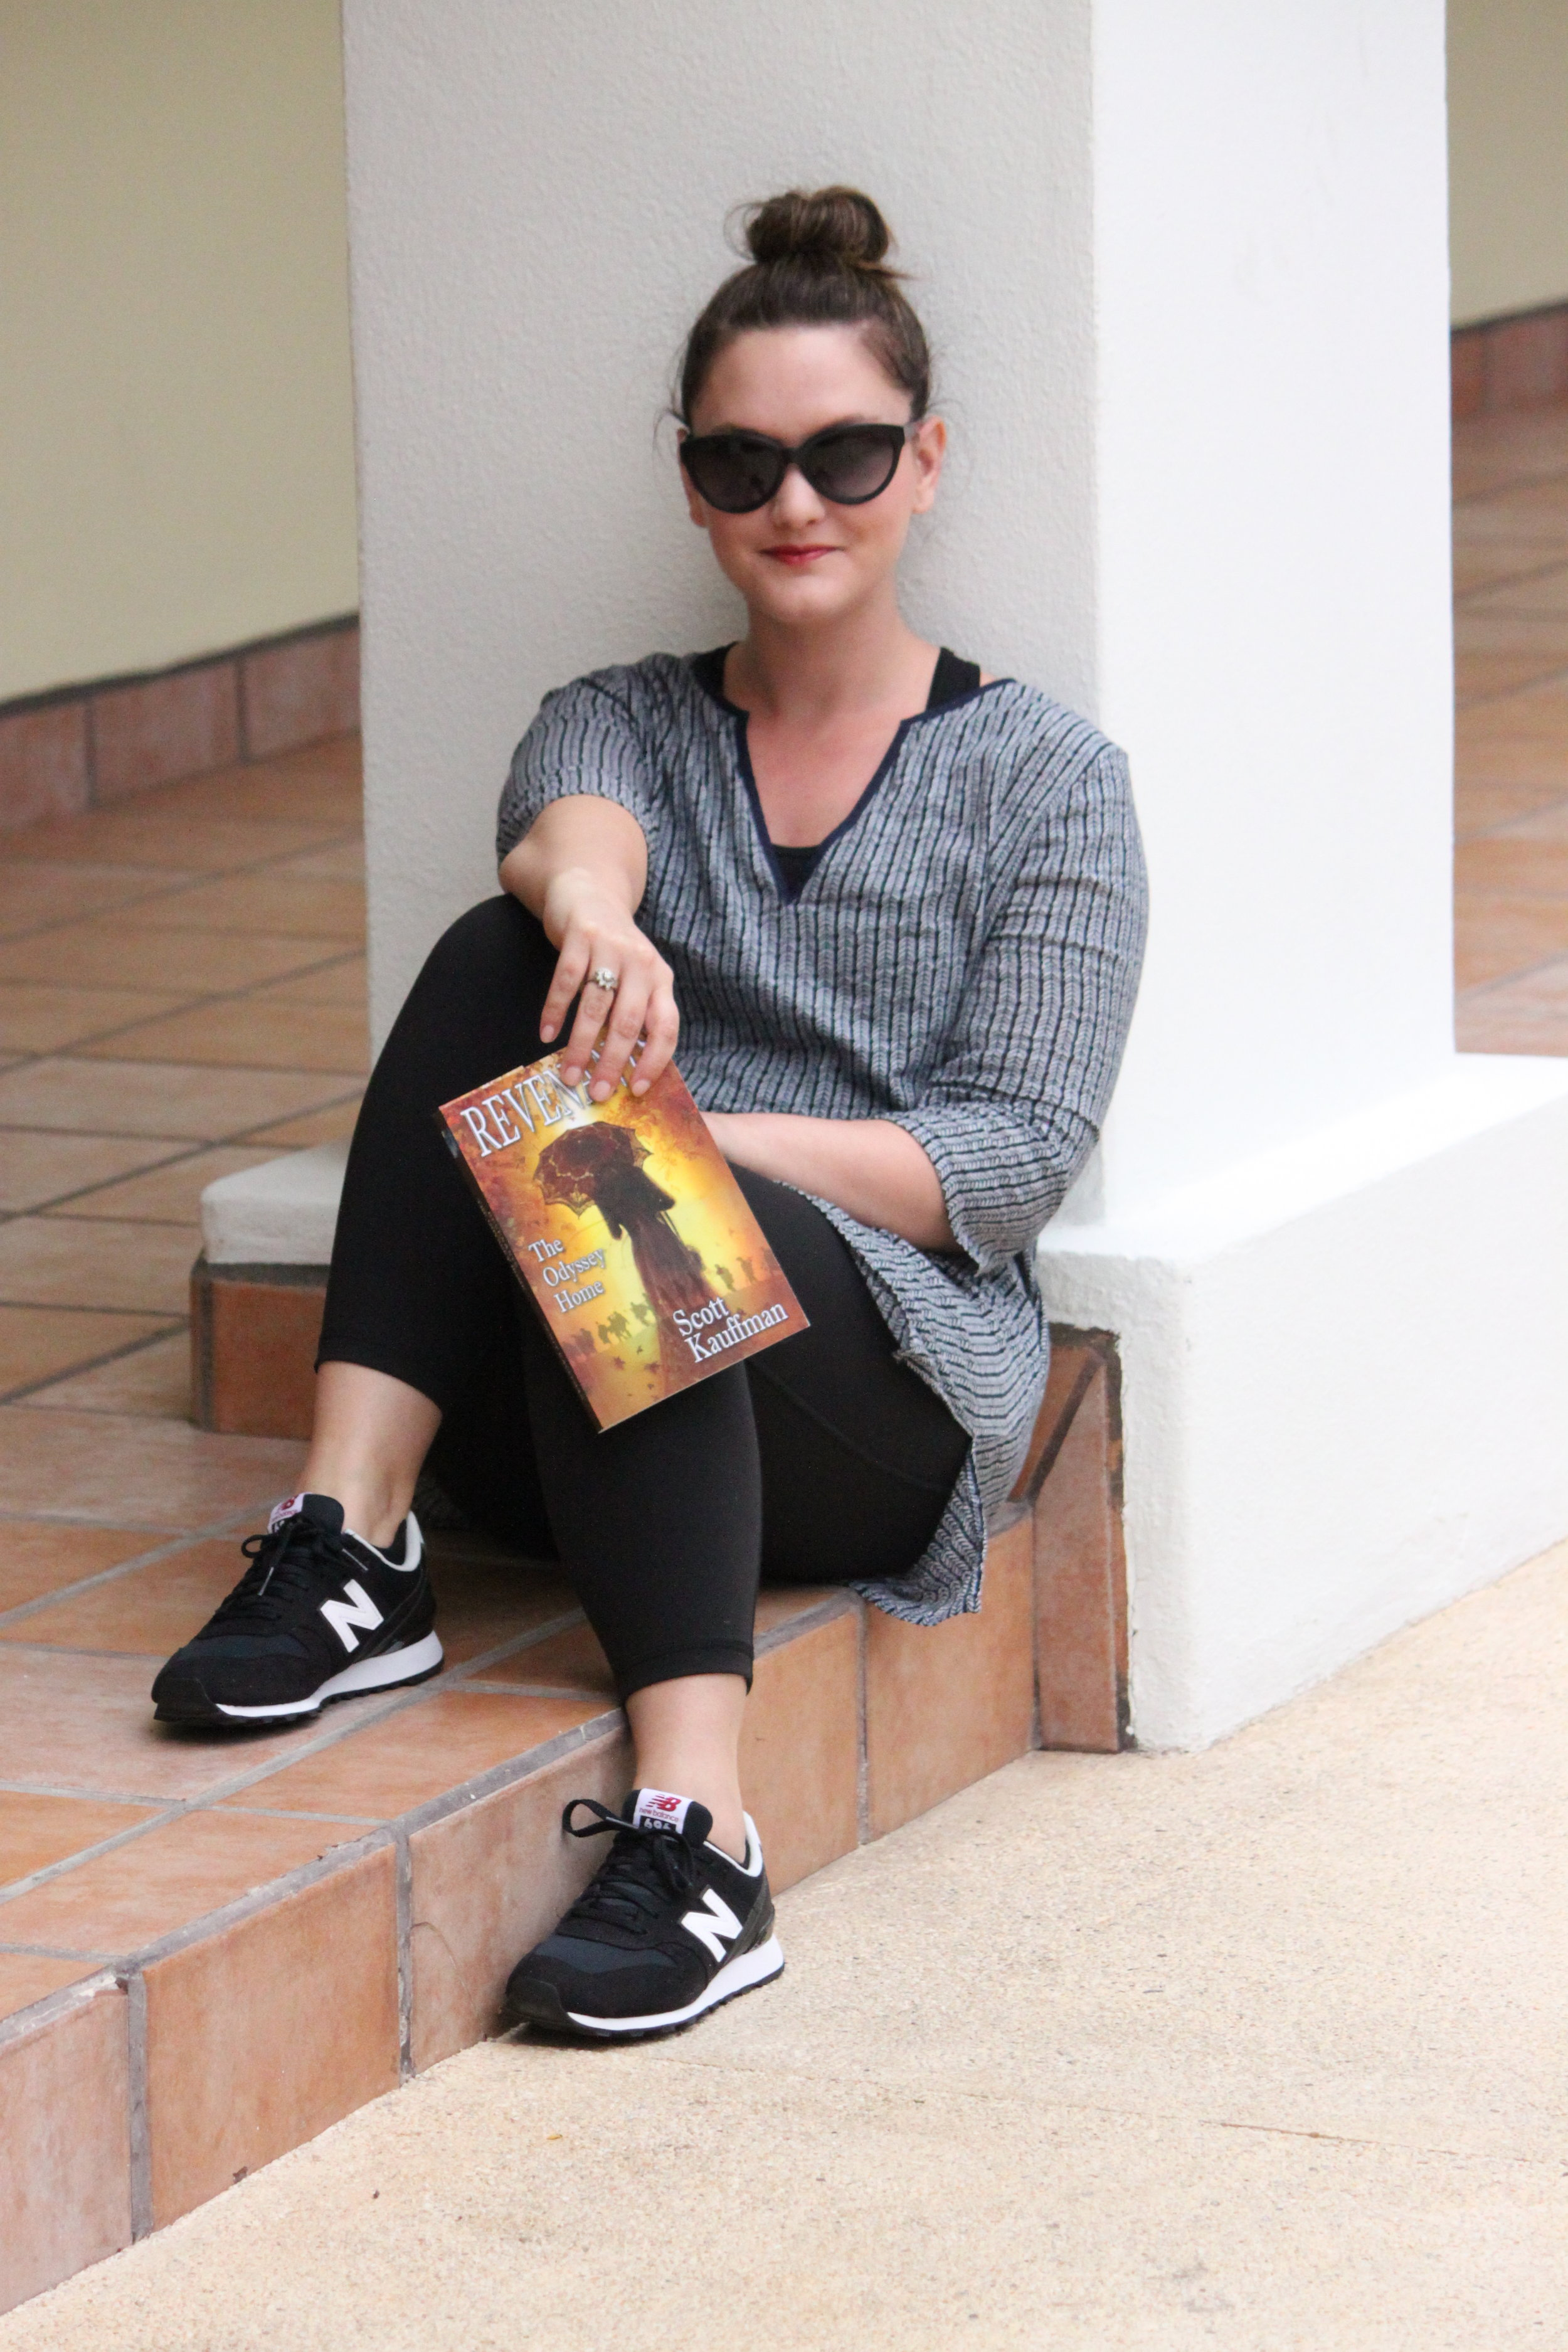 Reading Revenants by Scott Kauffman at Sirena del Mar in Cabo San Lucas, Mexico